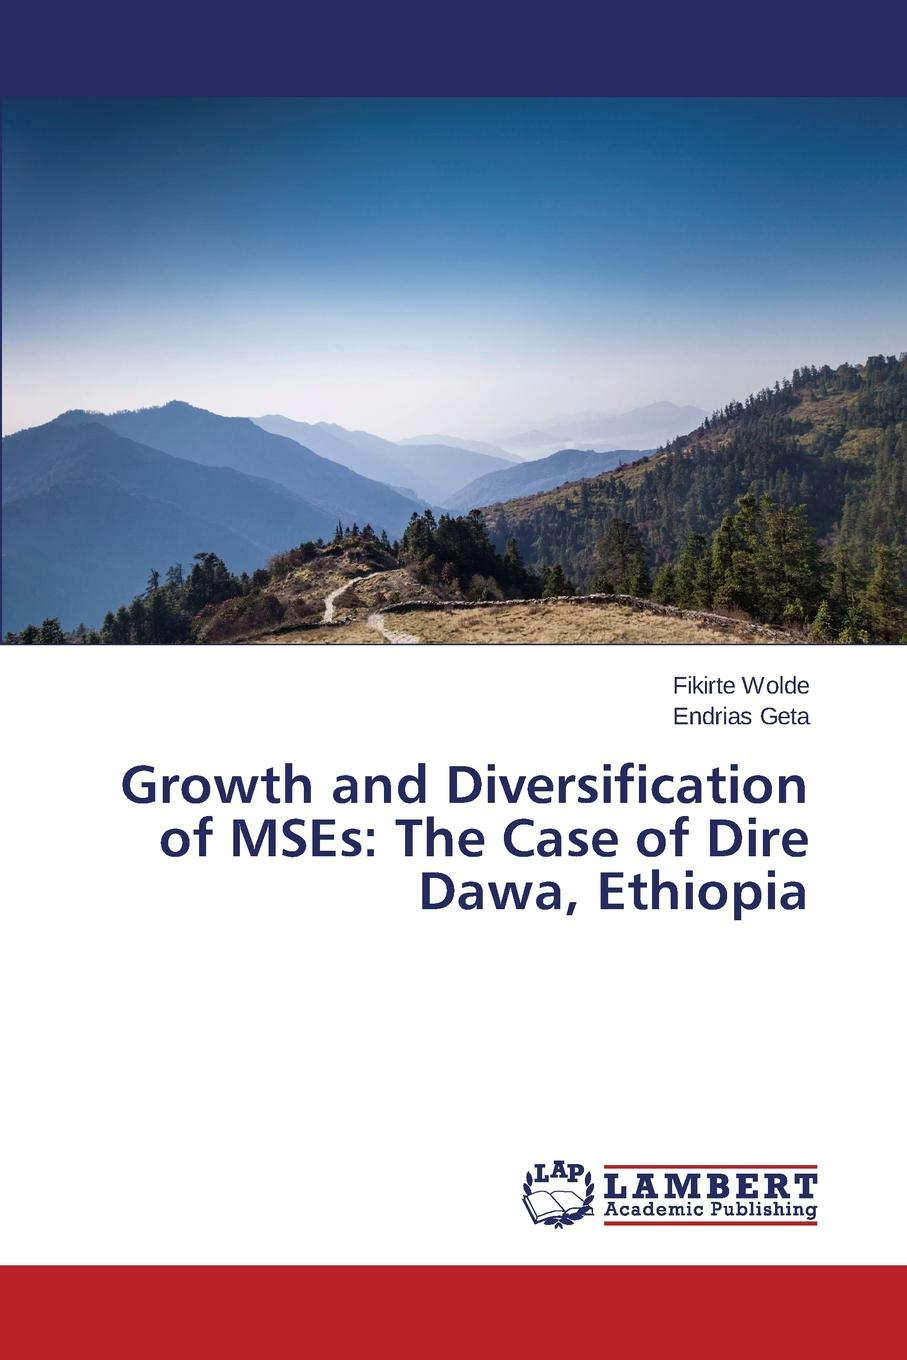 Wolde Fikirte, Geta Endrias Growth and Diversification of MSEs. The Case of Dire Dawa, Ethiopia keshra sangwal nucleation and crystal growth metastability of solutions and melts